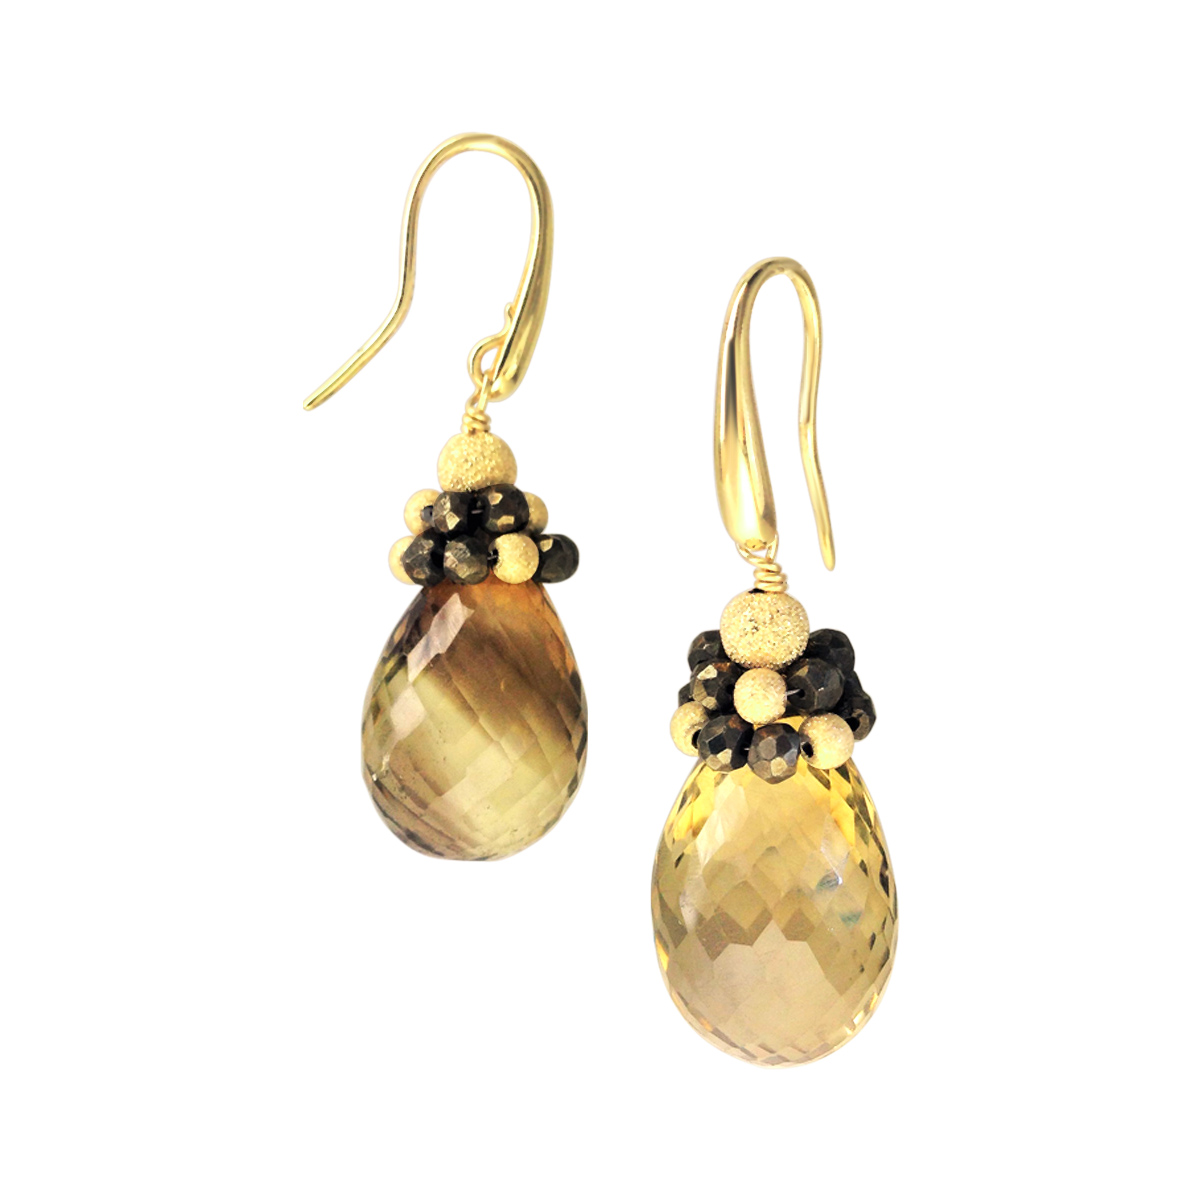 Smoky quartz 18ct gold earrings